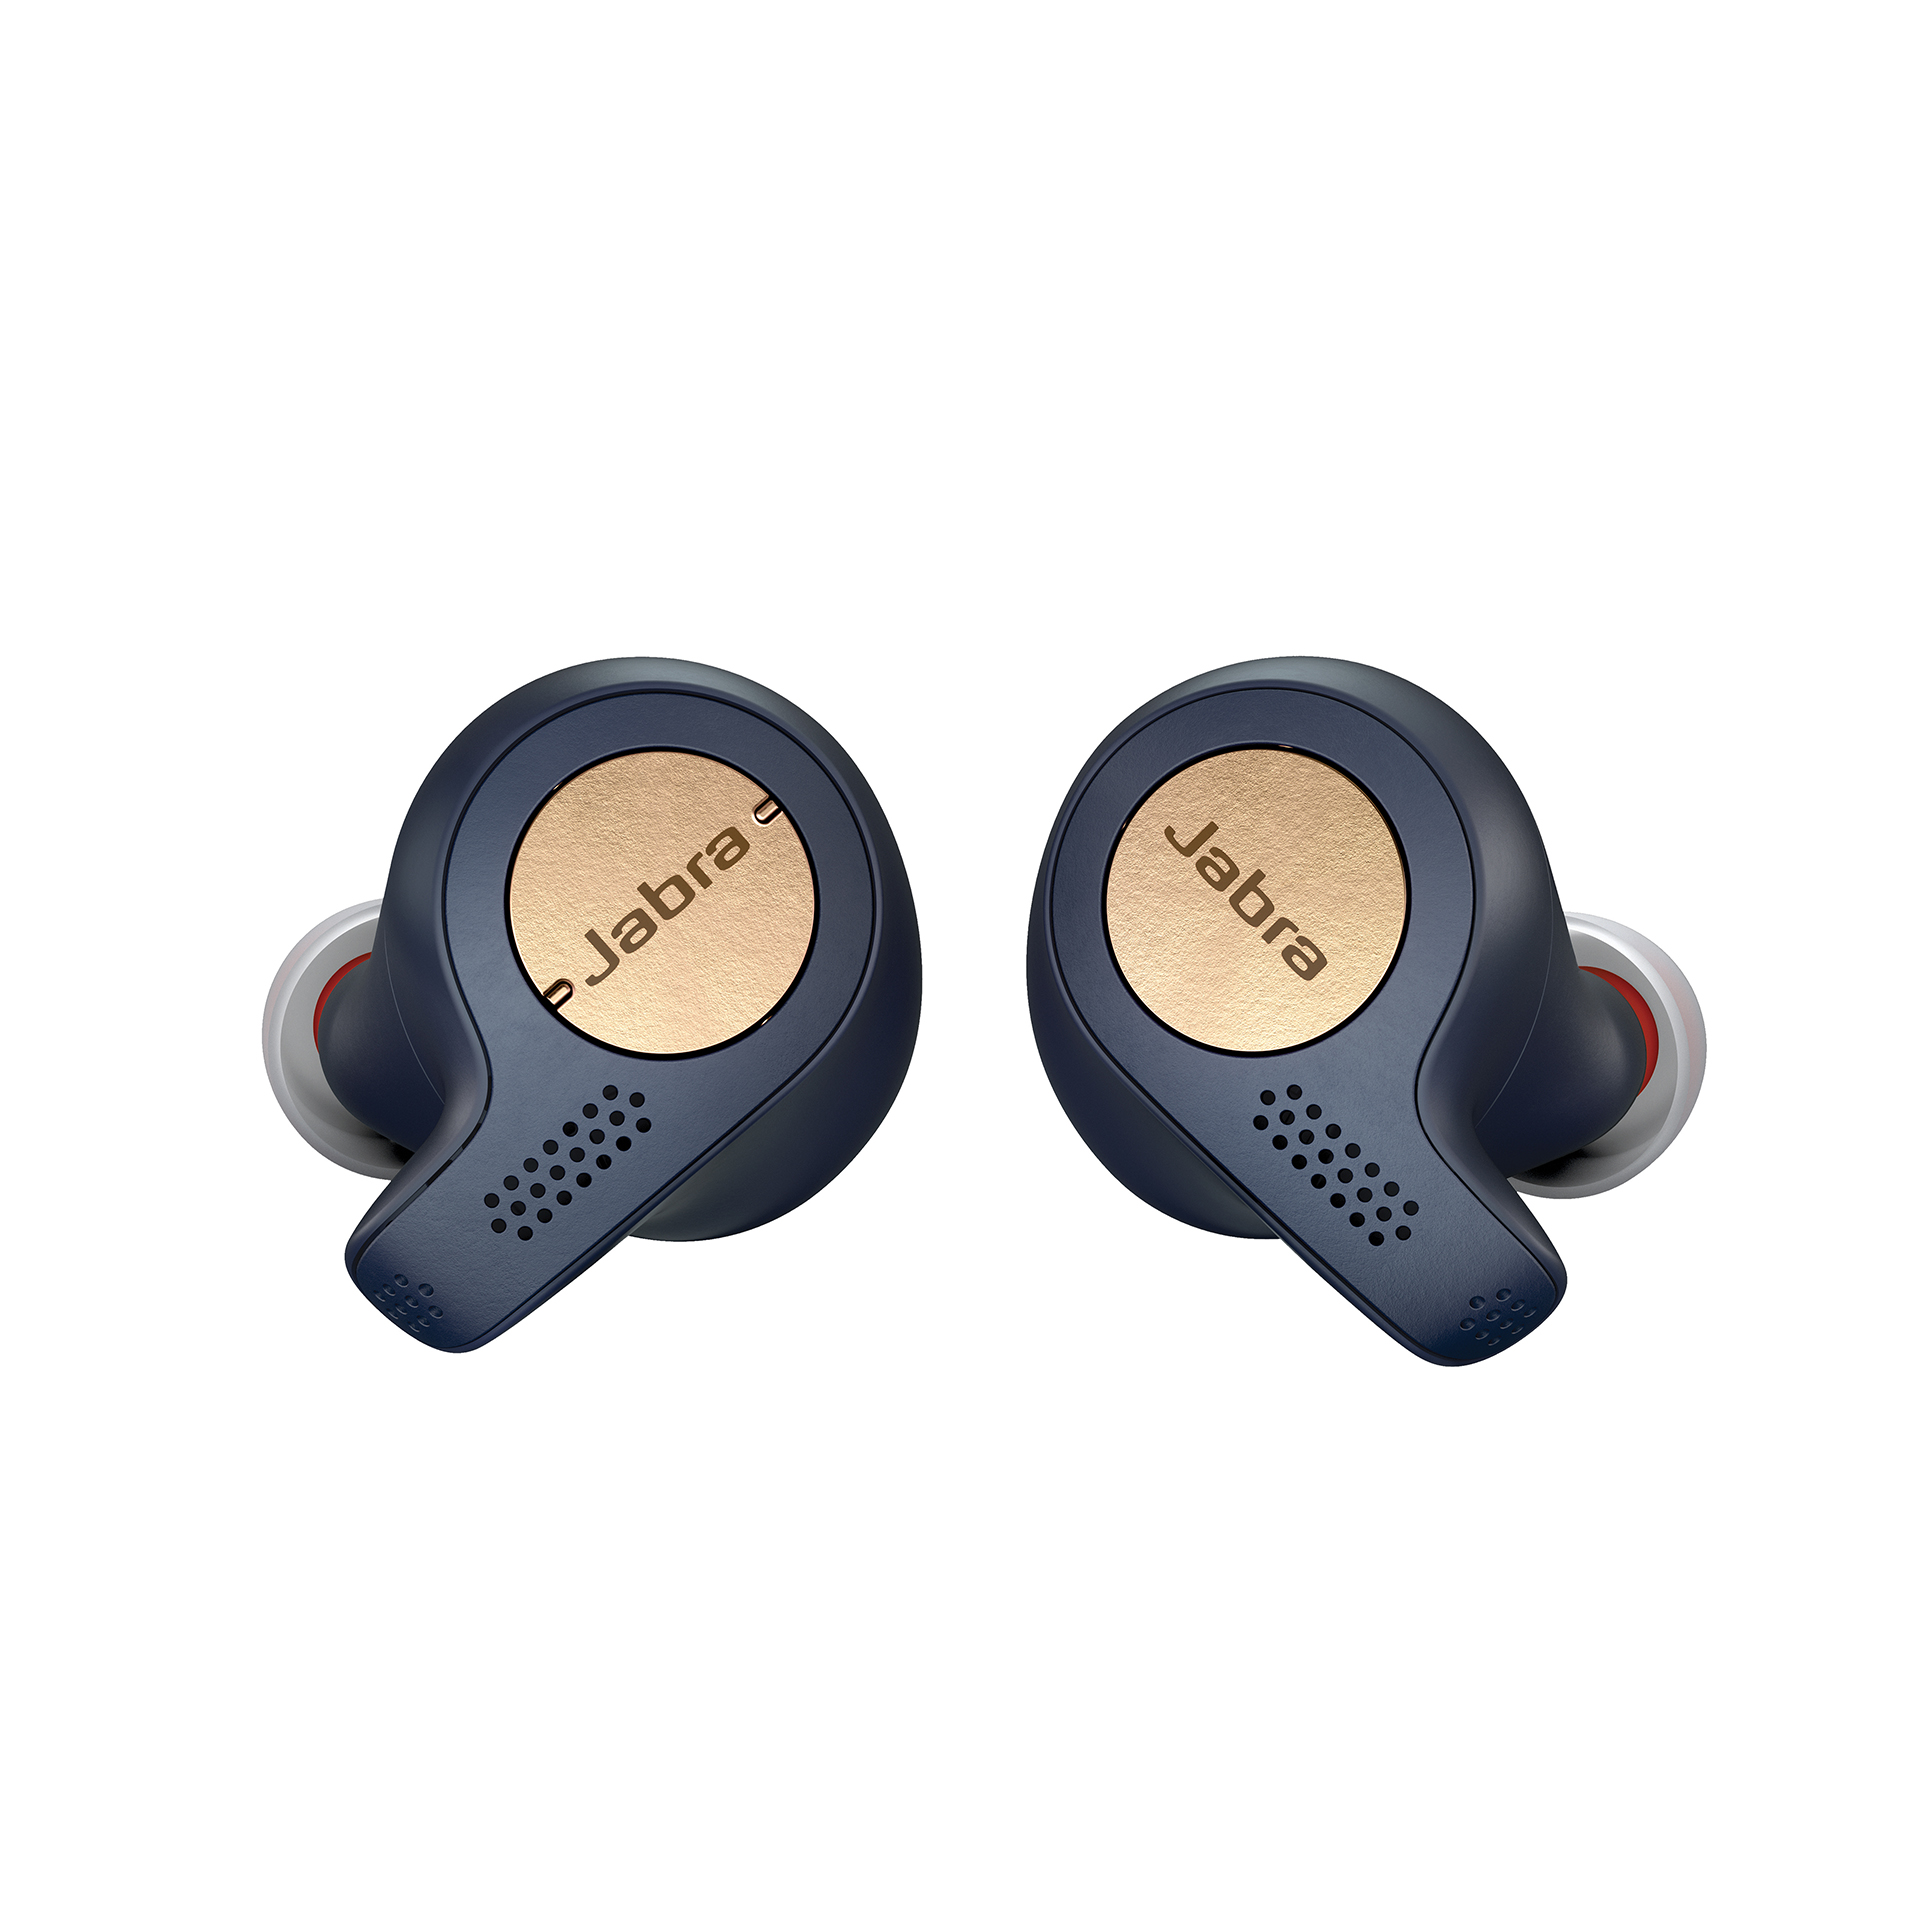 Jabra-Elite-Active-65t-True-Wireless-Earbuds-Manufacturer-Refurbished thumbnail 16